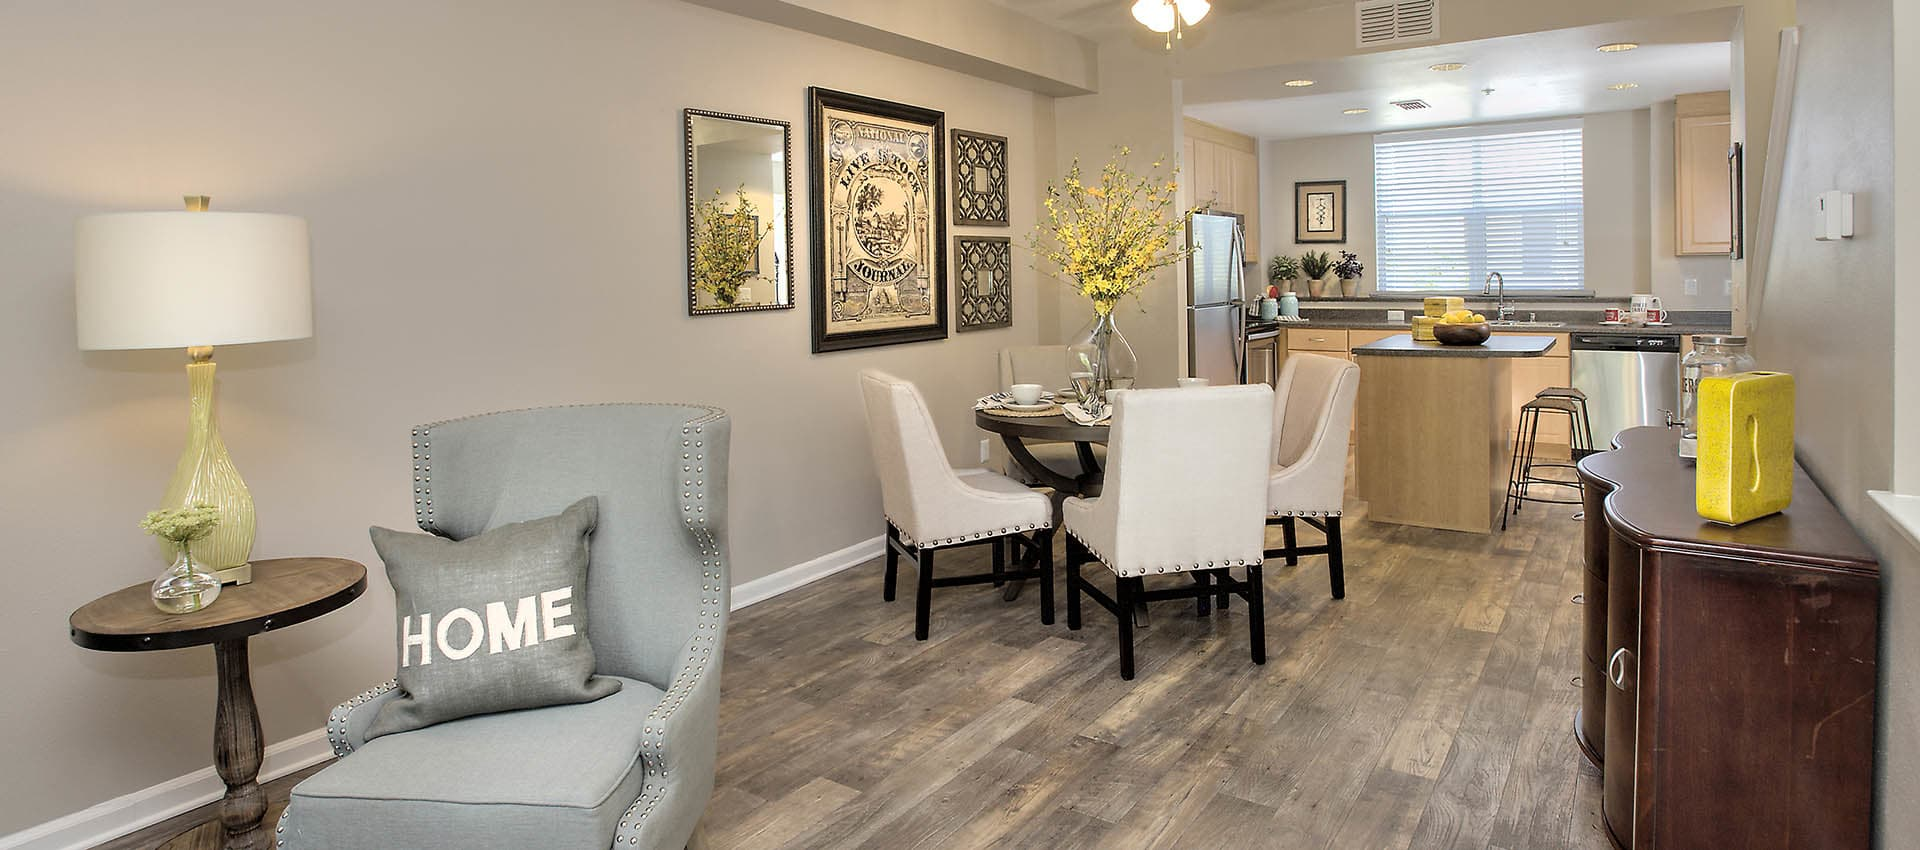 Dining Area With Laminate Flooring at Azure Apartment Homes in Petaluma, California